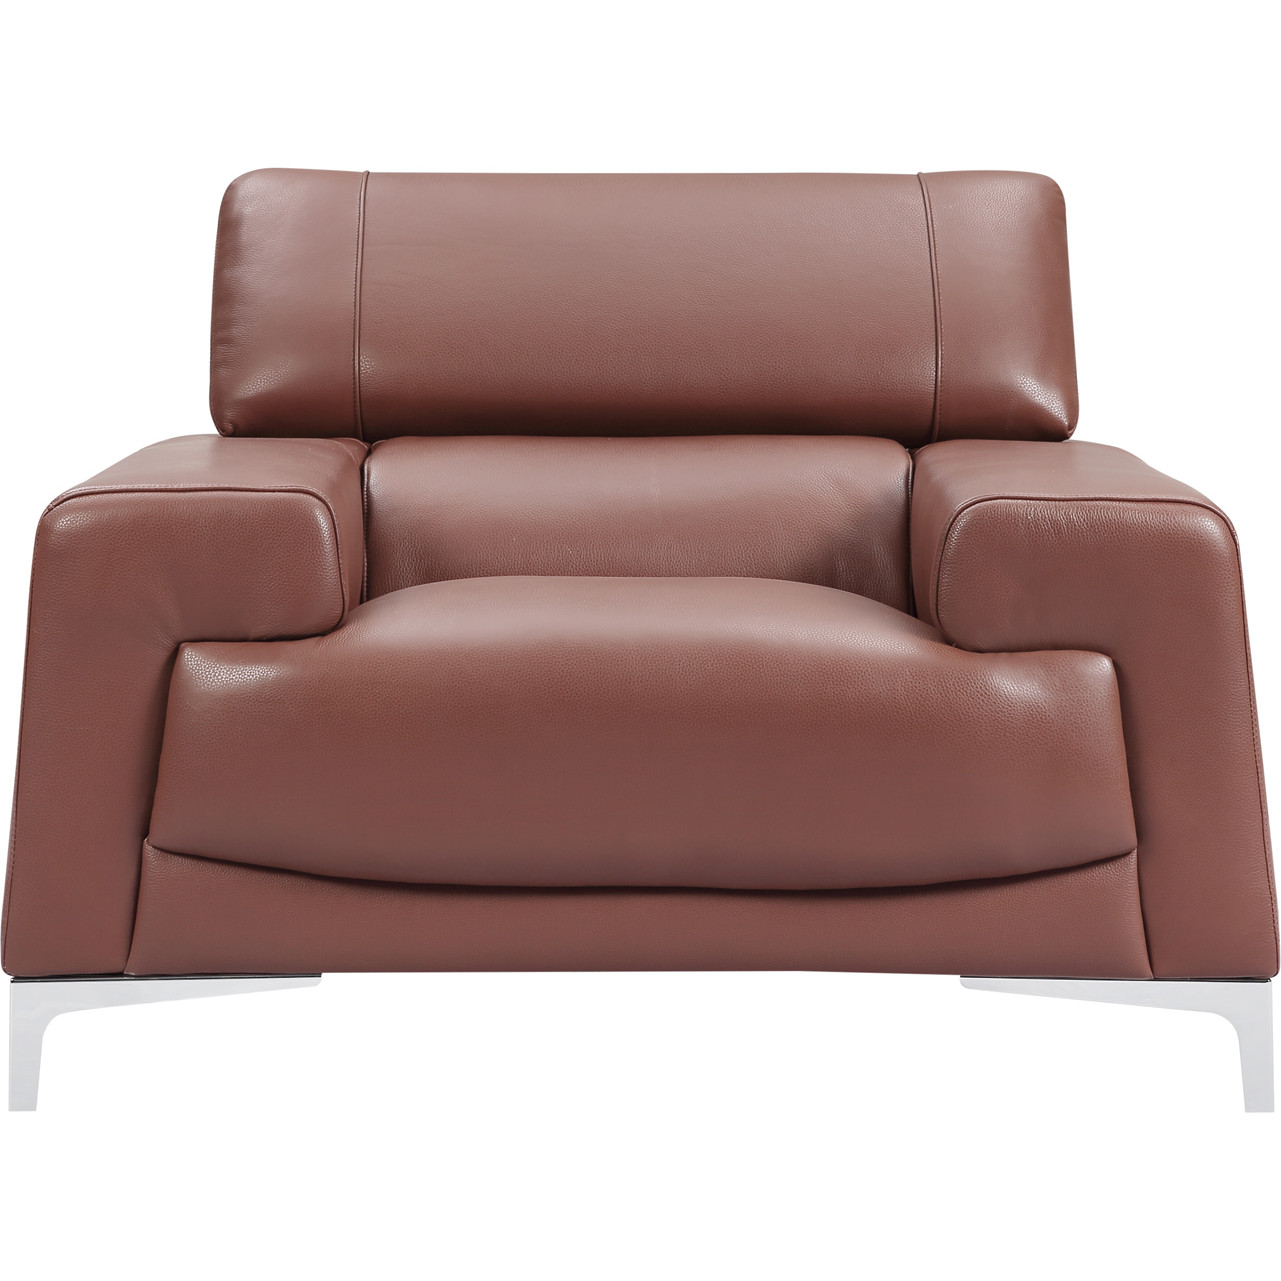 Fantastic 2537 Arm Chair In Saddle Brown Leather By Esf Furniture Imports Creativecarmelina Interior Chair Design Creativecarmelinacom